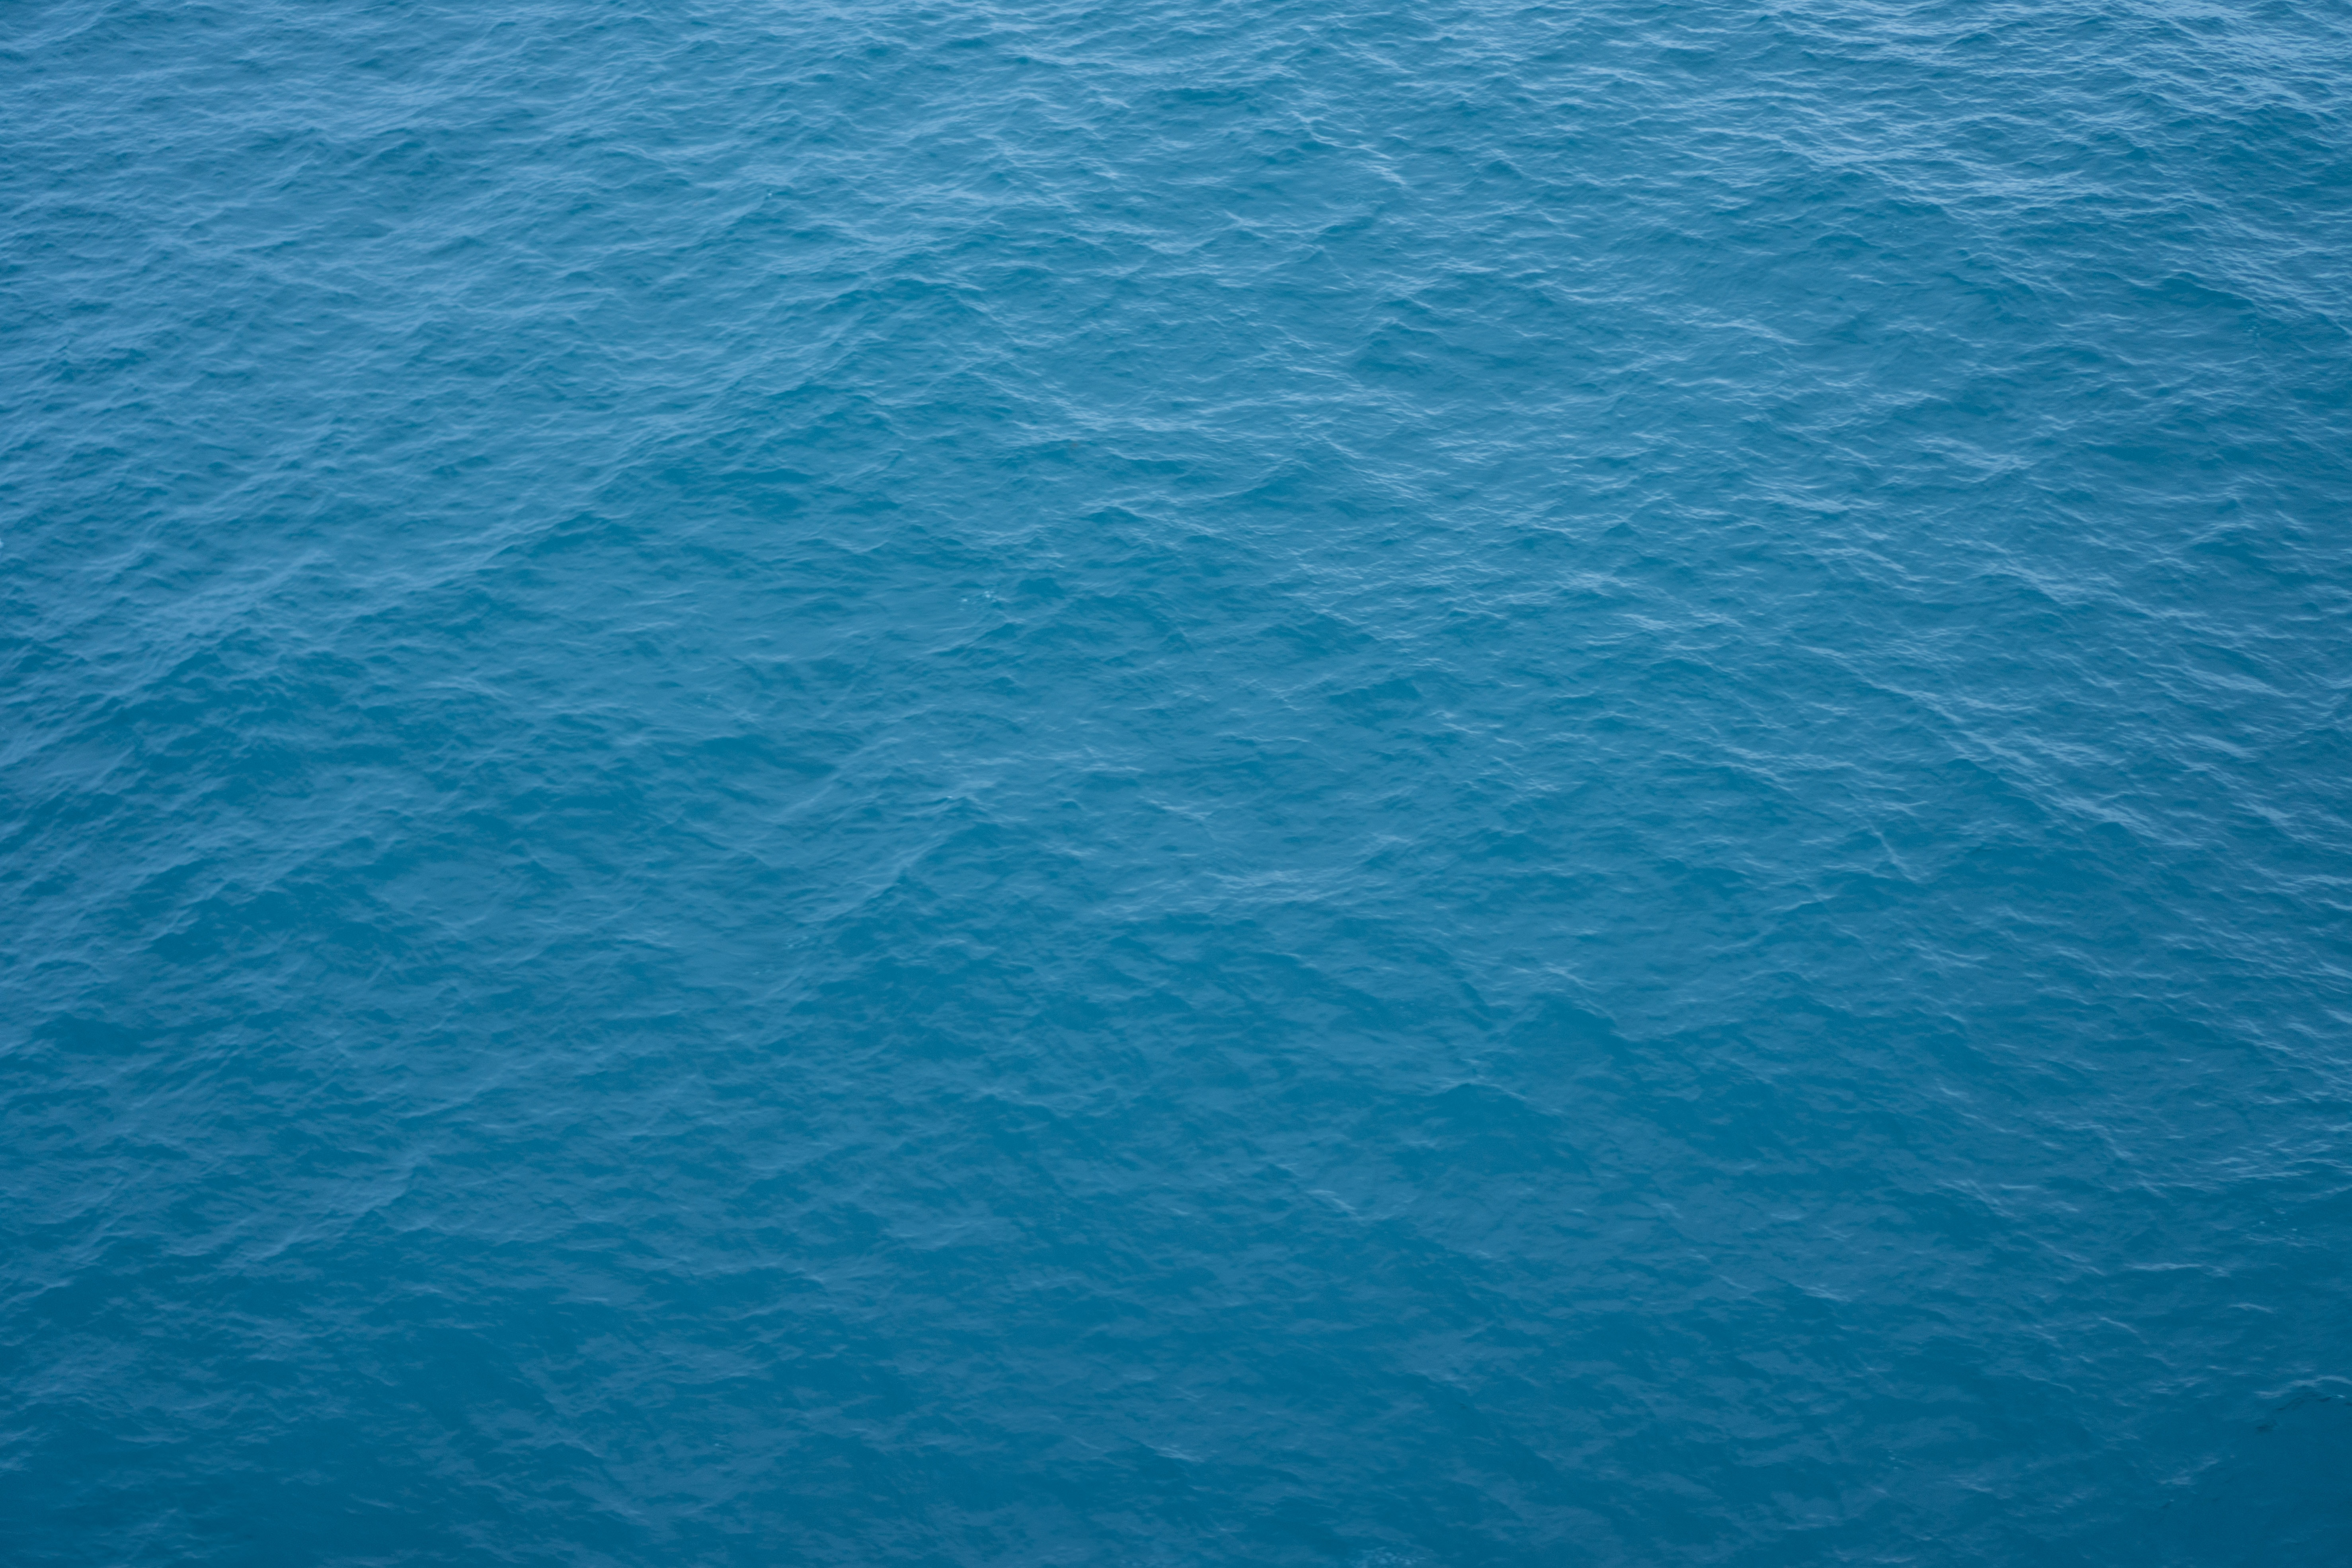 Bodies Of Water Ocean Png - 5386197 5910x3940 #water, #background, #alaska, #river, #abstract ...